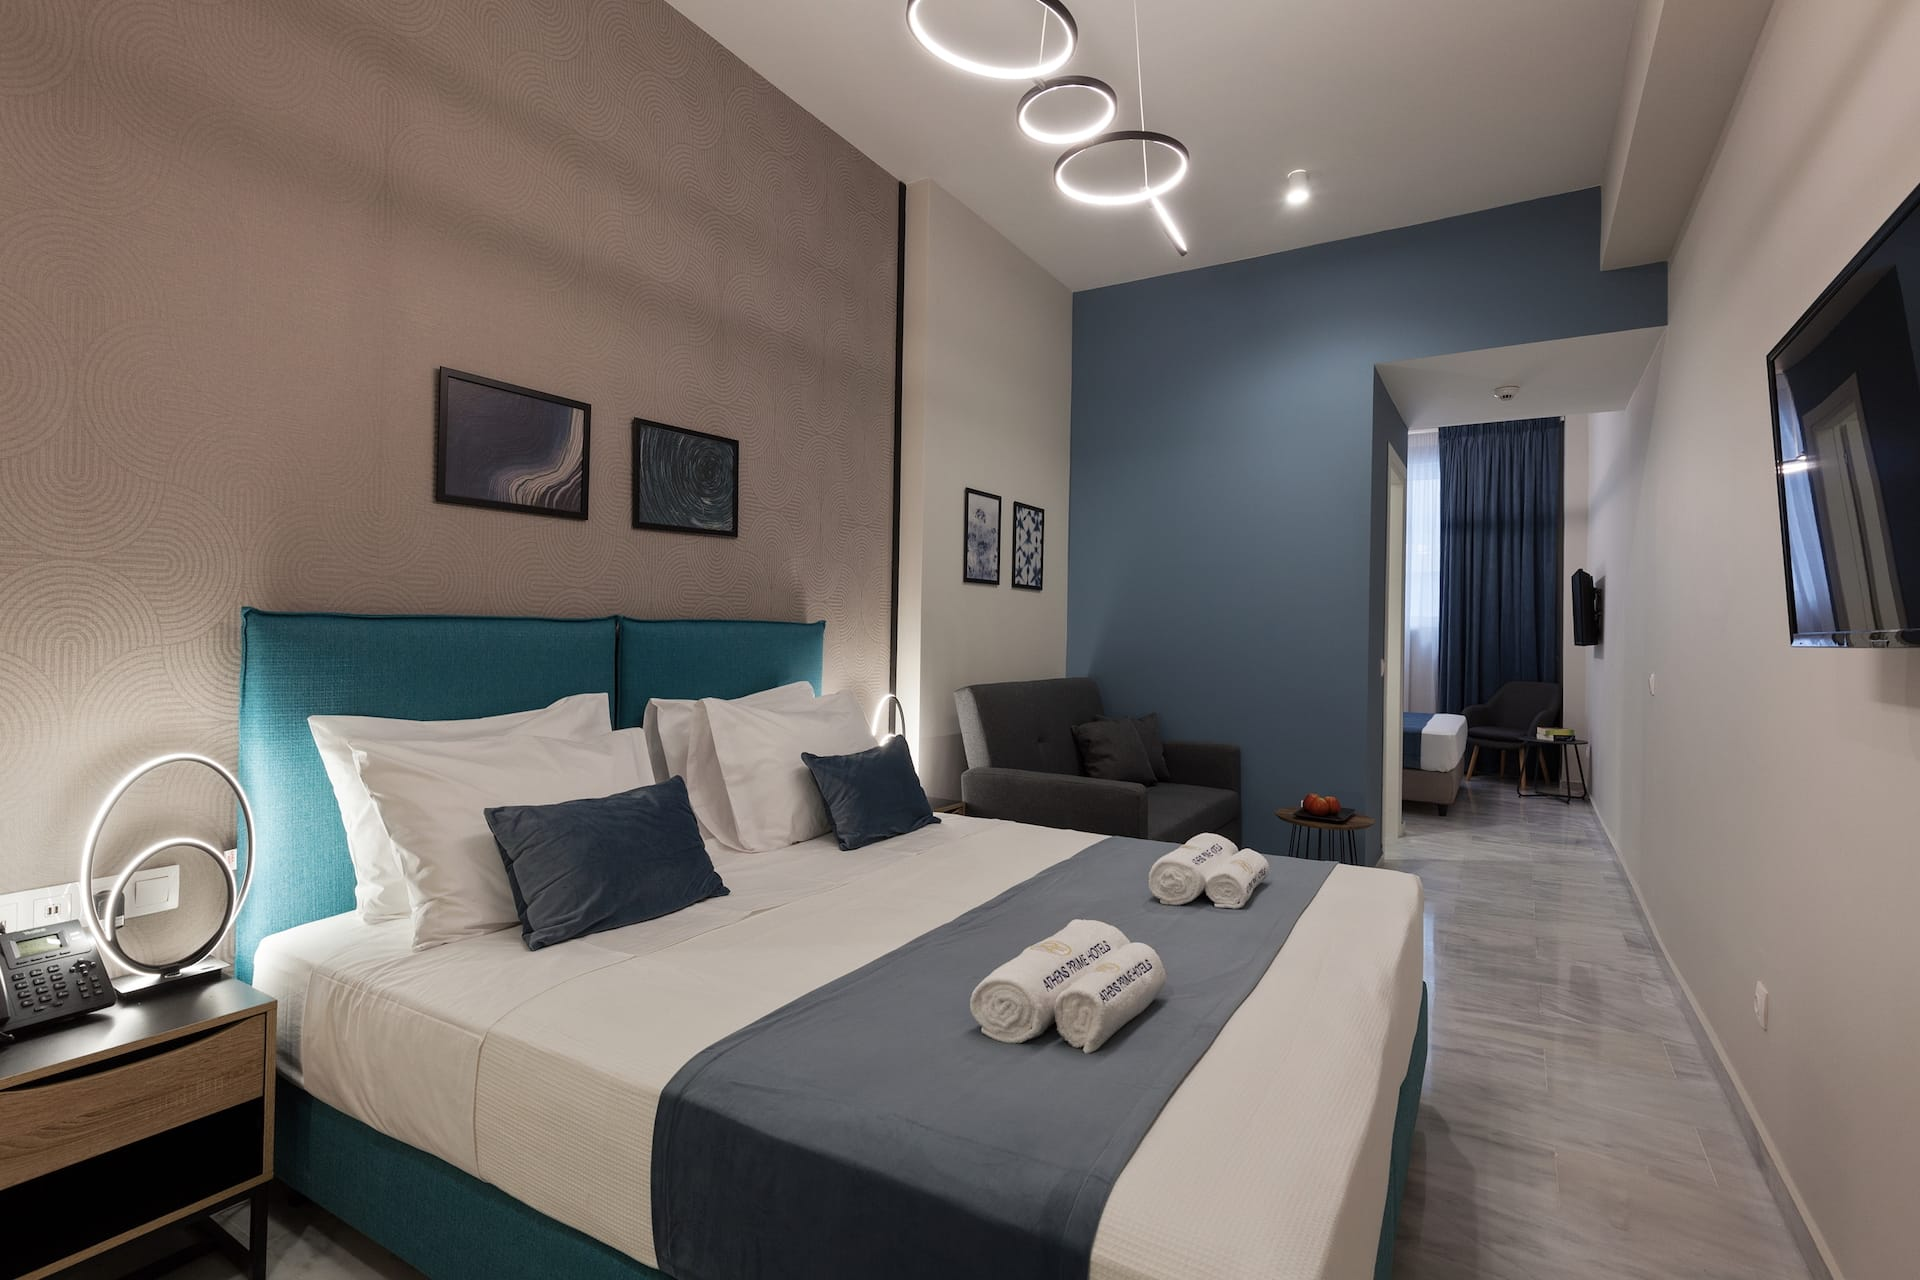 The Trendy by Athens Prime hotels Family Room. Luxury double rooms in the center of Athens, Greece